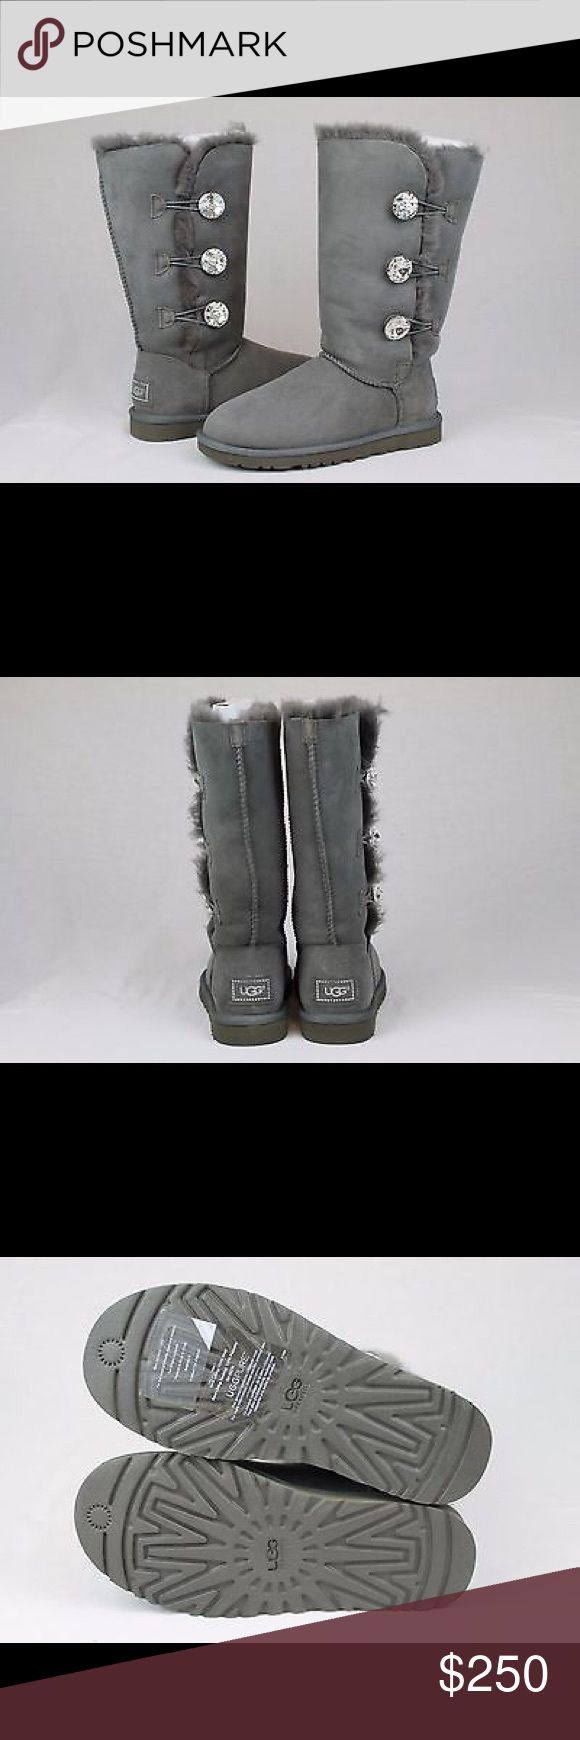 UGG BAILEY BLING TRIPLET BOOT, CHARCOAL GREY Brand new Ugg Australia Bailey Bling Button Triplet, Charcoal Grey, unused, unworn. Purchased directly from UGG, has UGG sticker on sole and UGG authenticating materials in box, along with additional small crystals. Happy to ship in UGG box, but will result in higher cost do to additional cost of purchasing large shipping box and additional shipping charges. Please indicate your preference directly in Comments. UGG AUSTRALIA Shoes Winter & Rain…